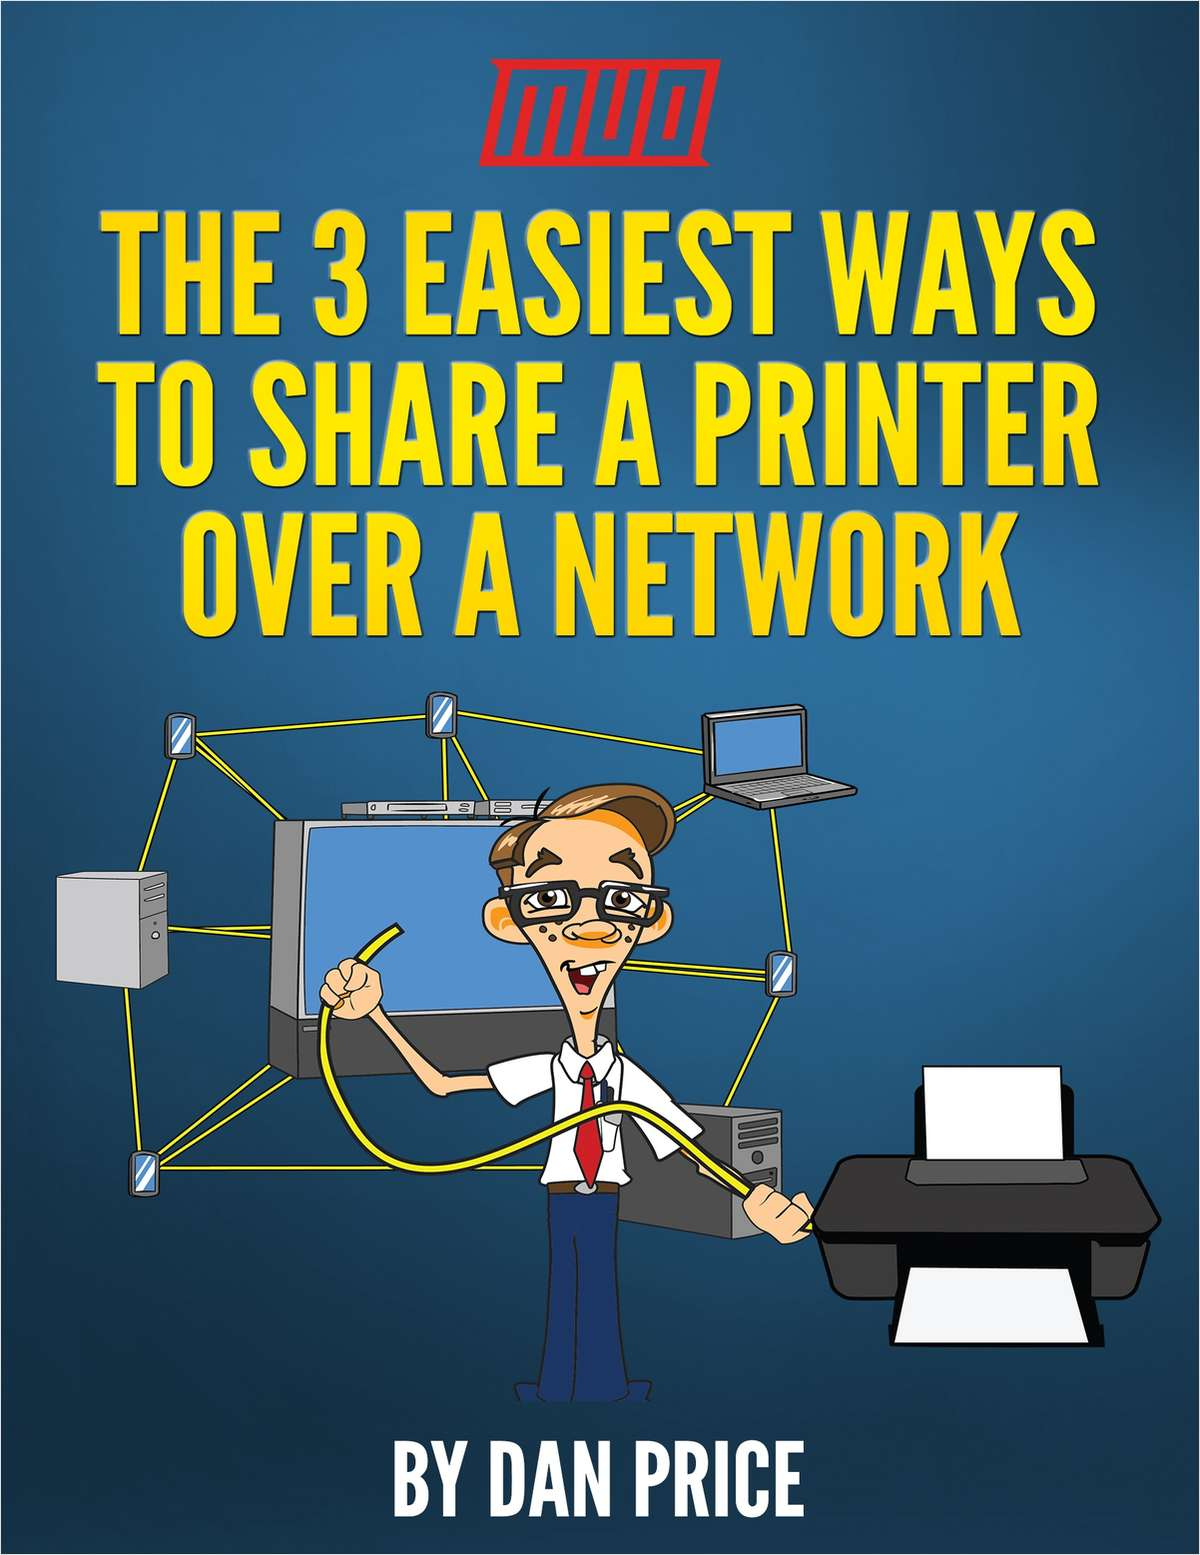 The 3 Easiest ways to Share a Printer Over a Network